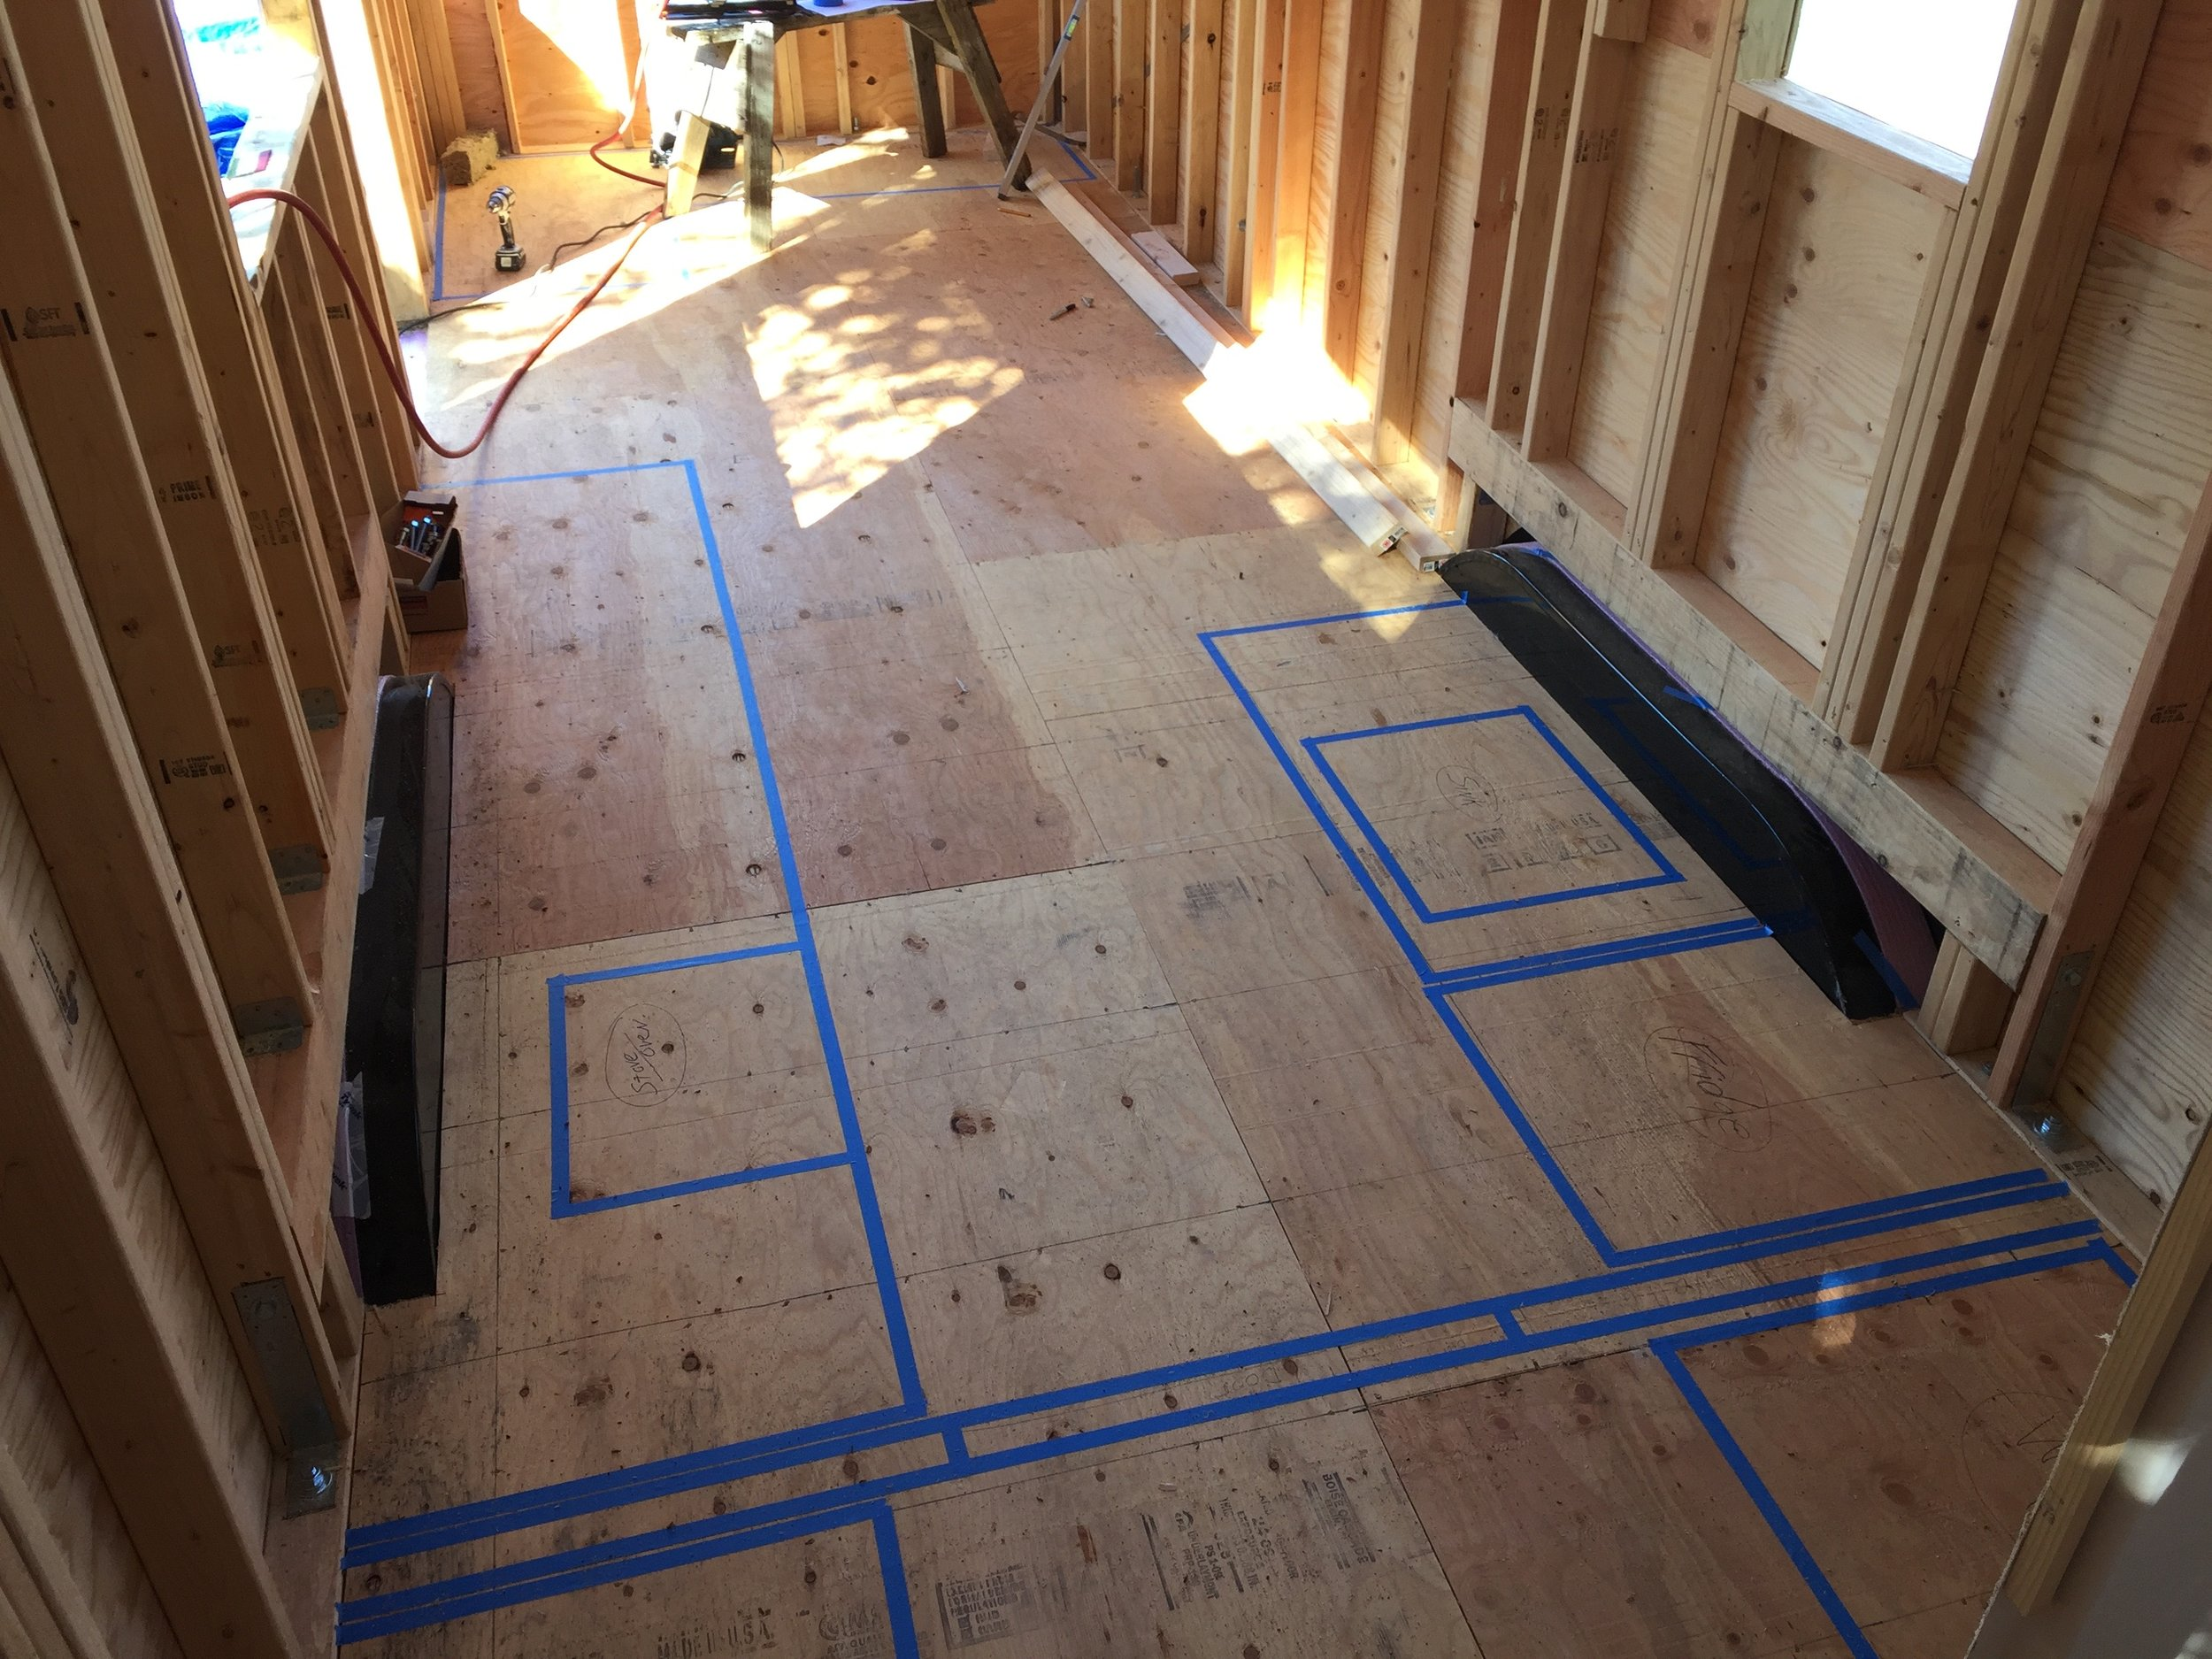 Laying out the floor plan